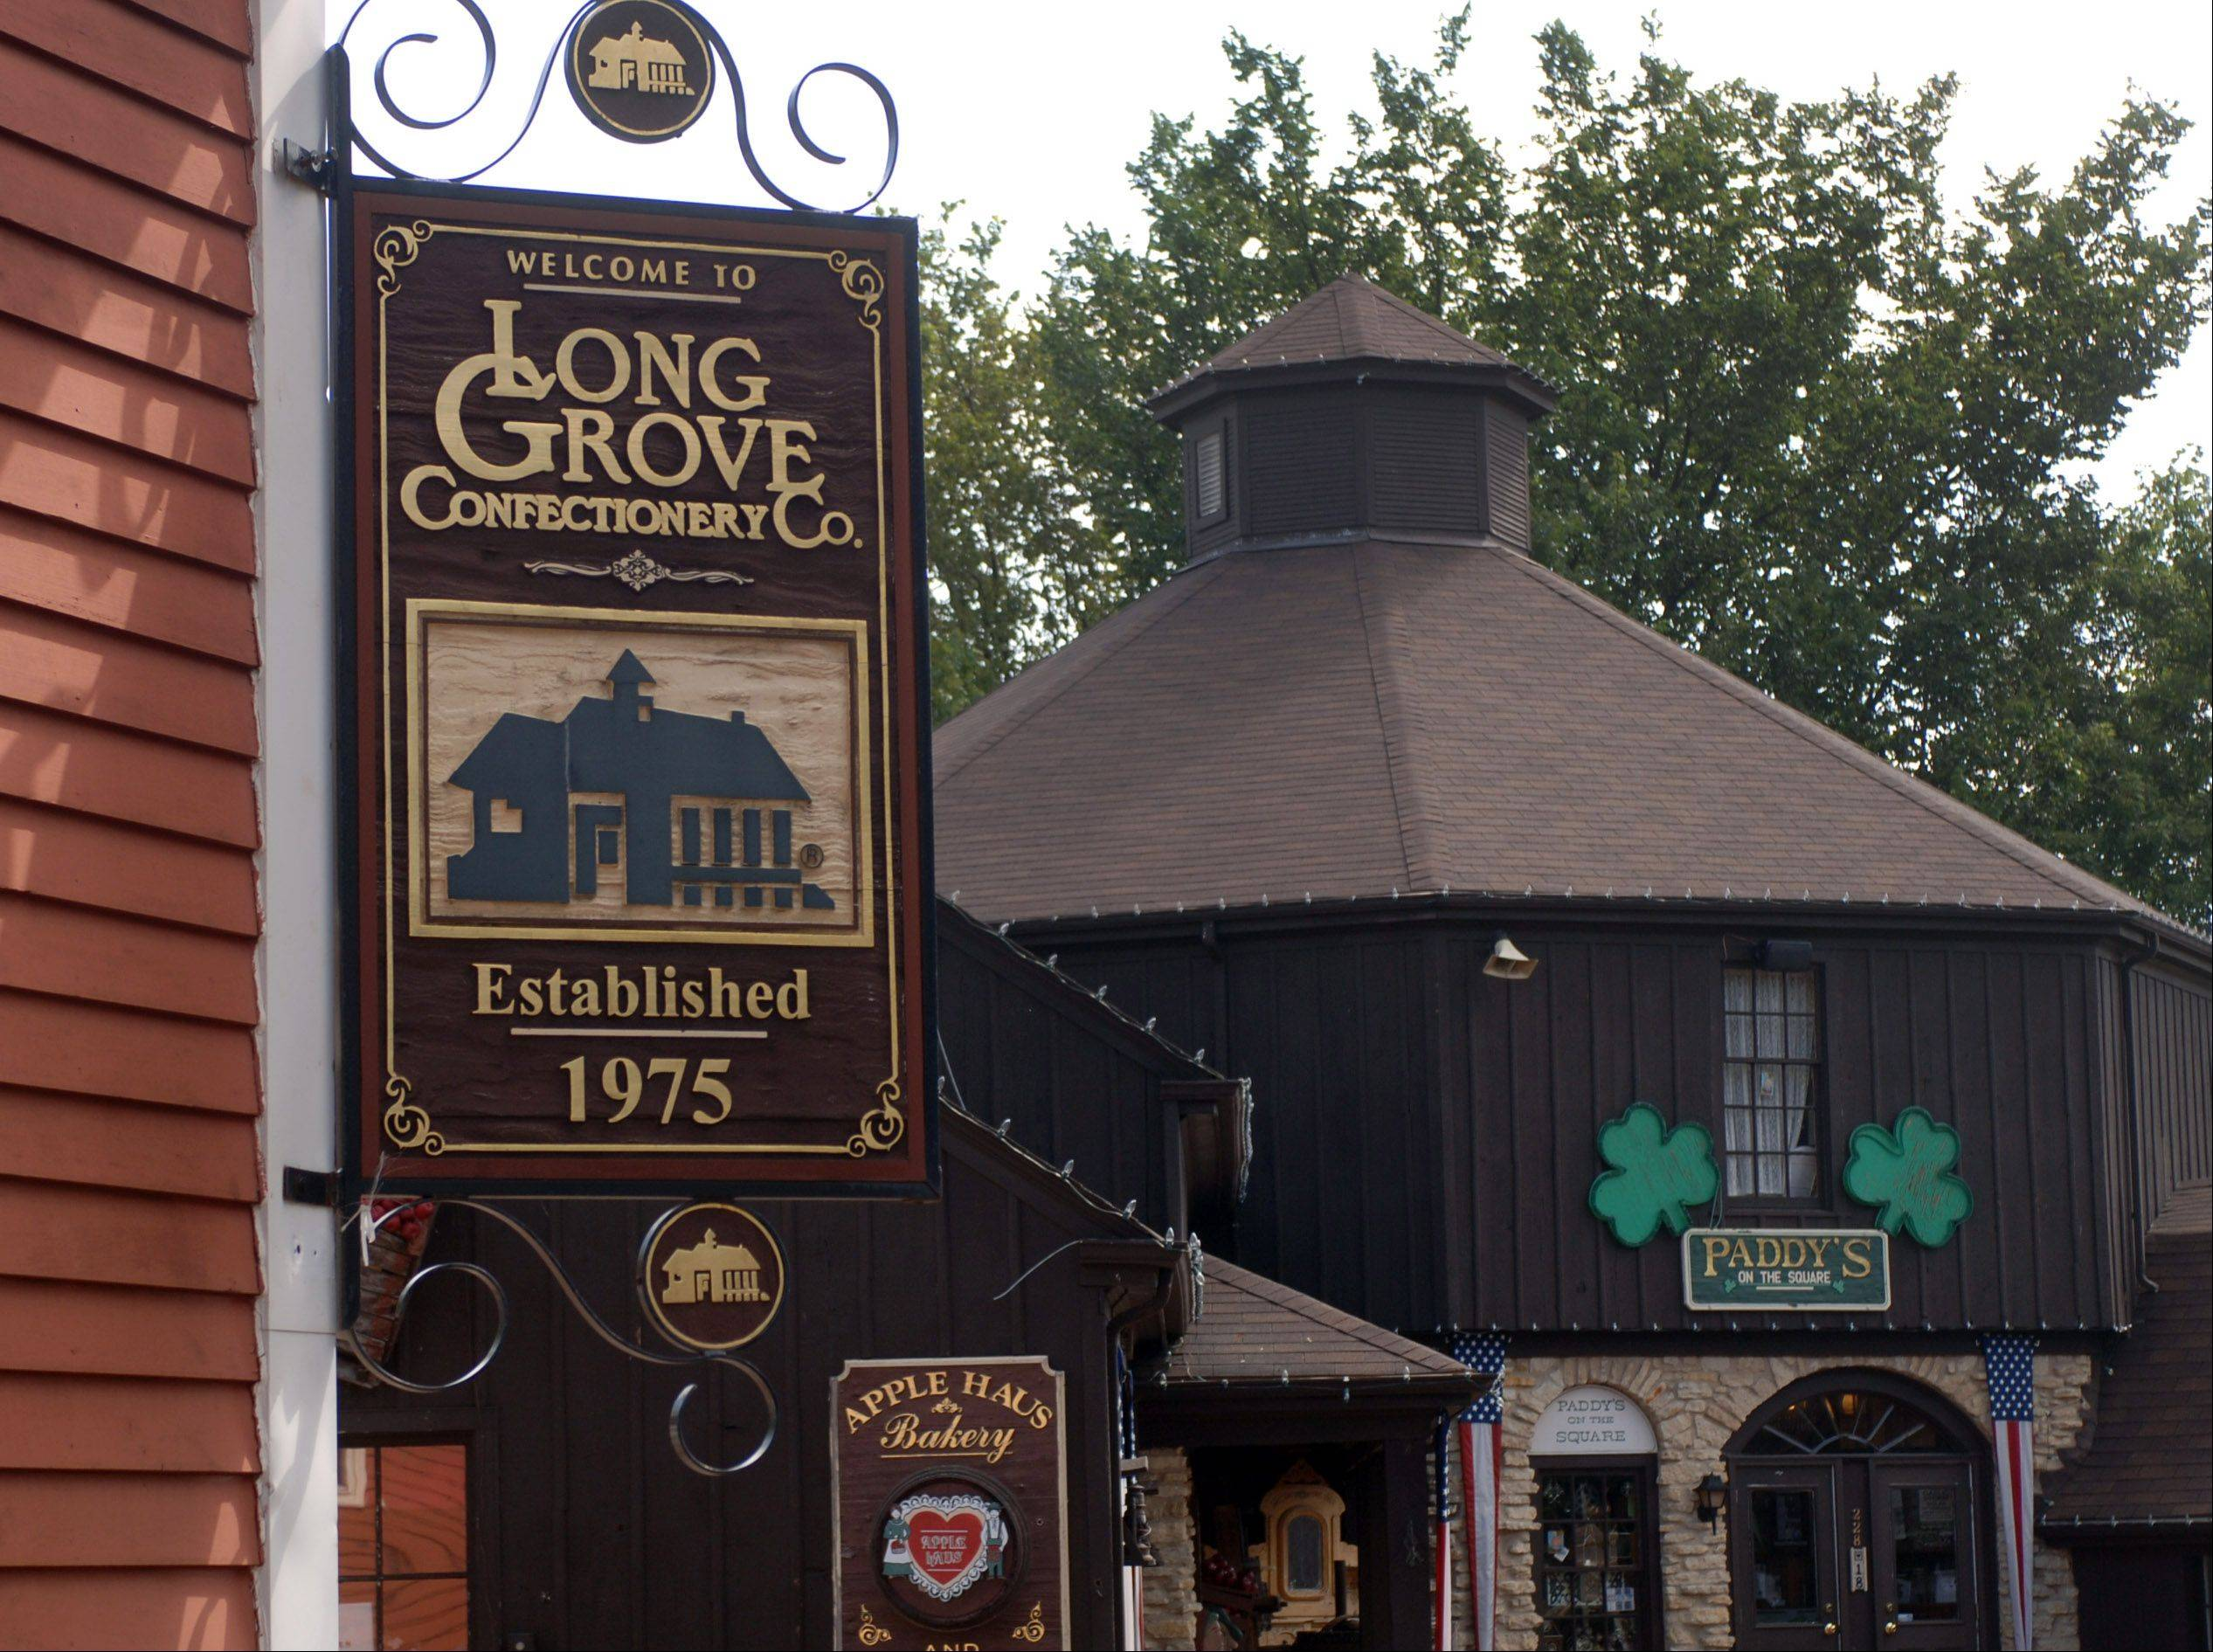 The Long Grove Confectionery Co. is a favorite shopping spot in Long Grove.